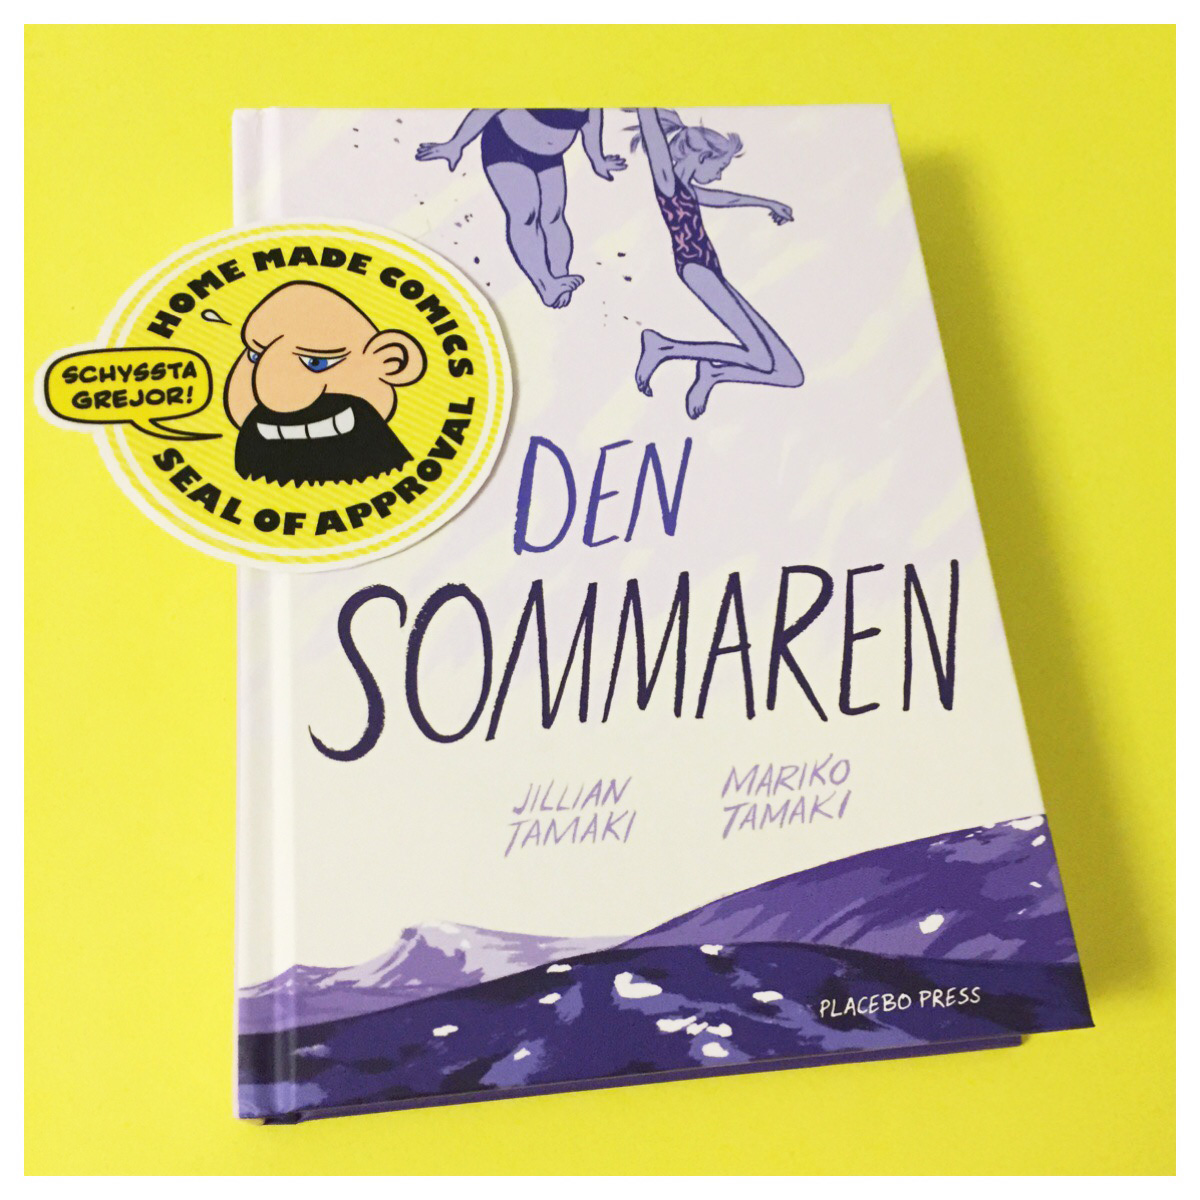 Home Made Comics Seal of Approval #176. Den sommaren av Jillian Tamaki och Mariko Tamaki utgiven av Placebo Press 2015.